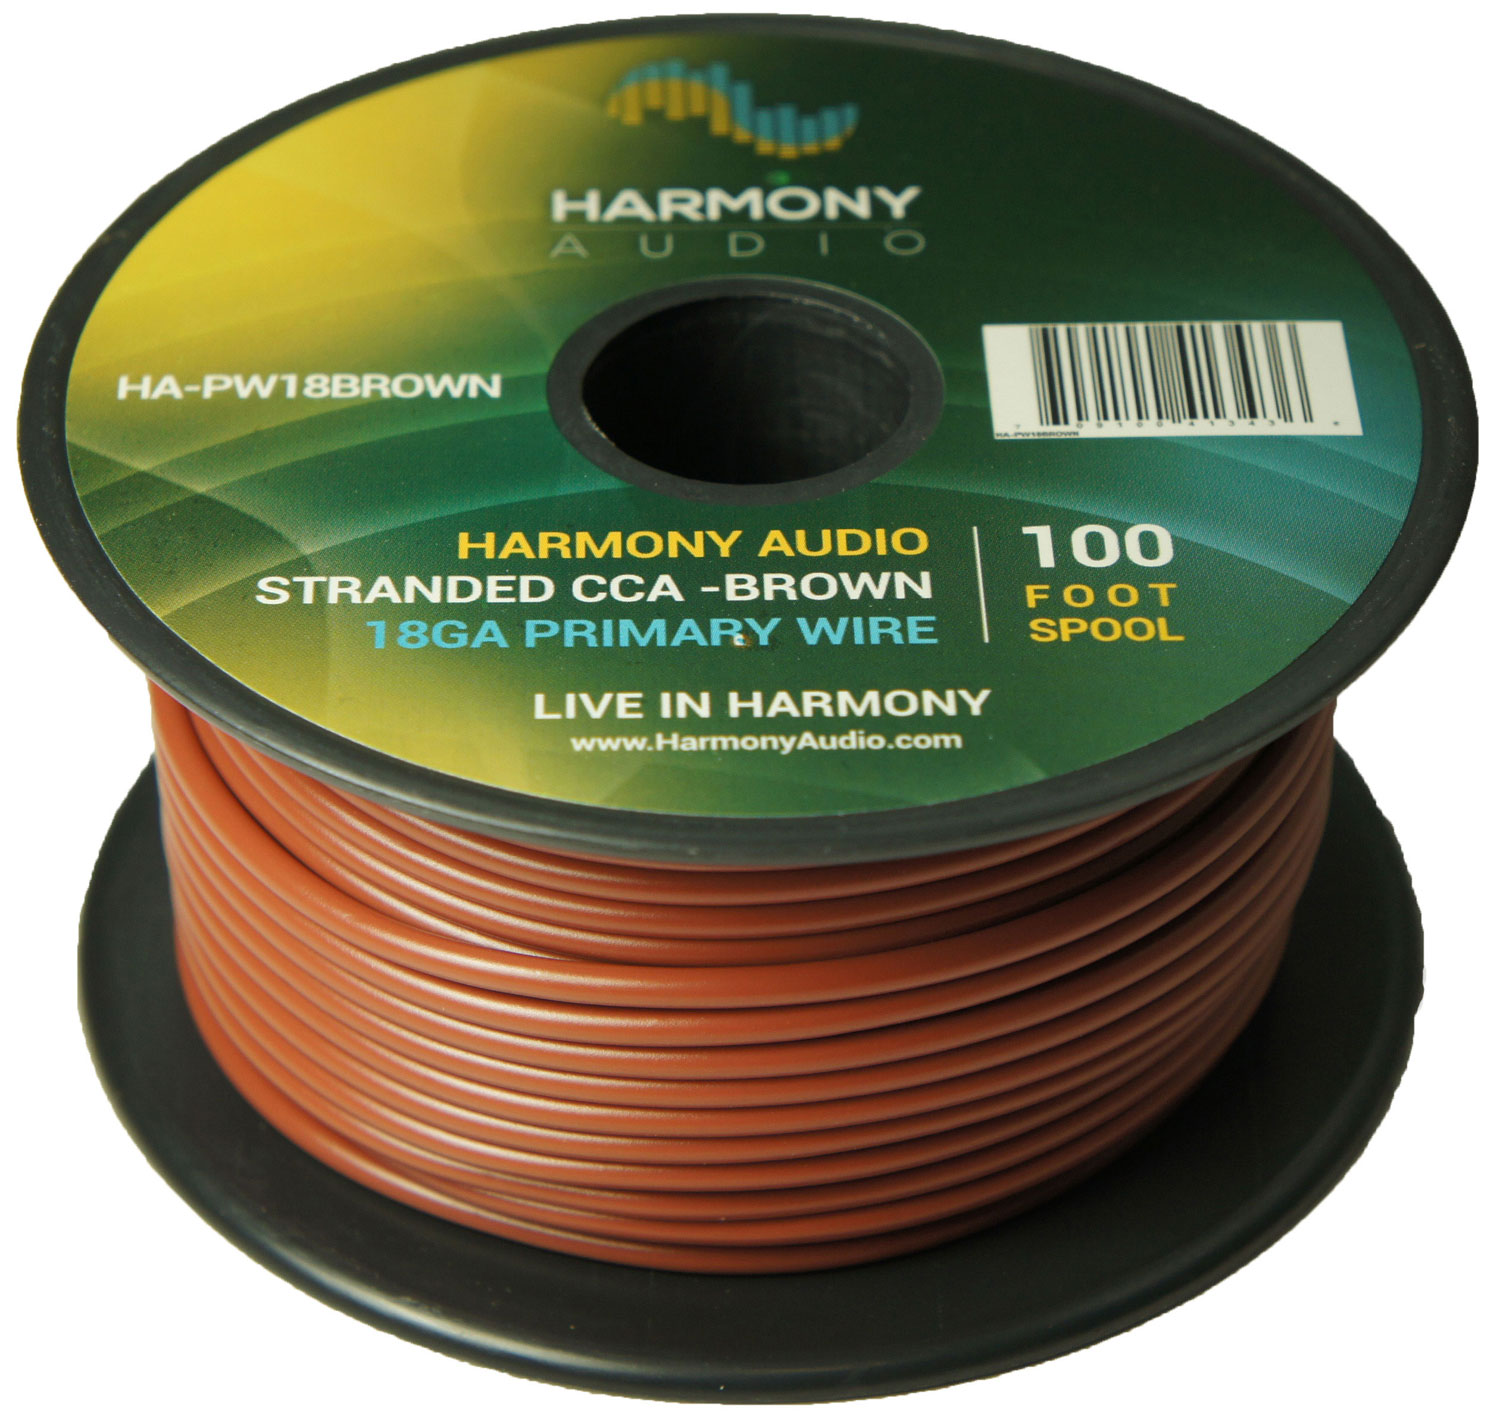 Harmony Audio HA-PW18BROWN Primary Single Conductor 18 Gauge Brown Power or Ground Wire Roll 100 Feet Cable for Car Audio / Trailer / Model Train / Remote